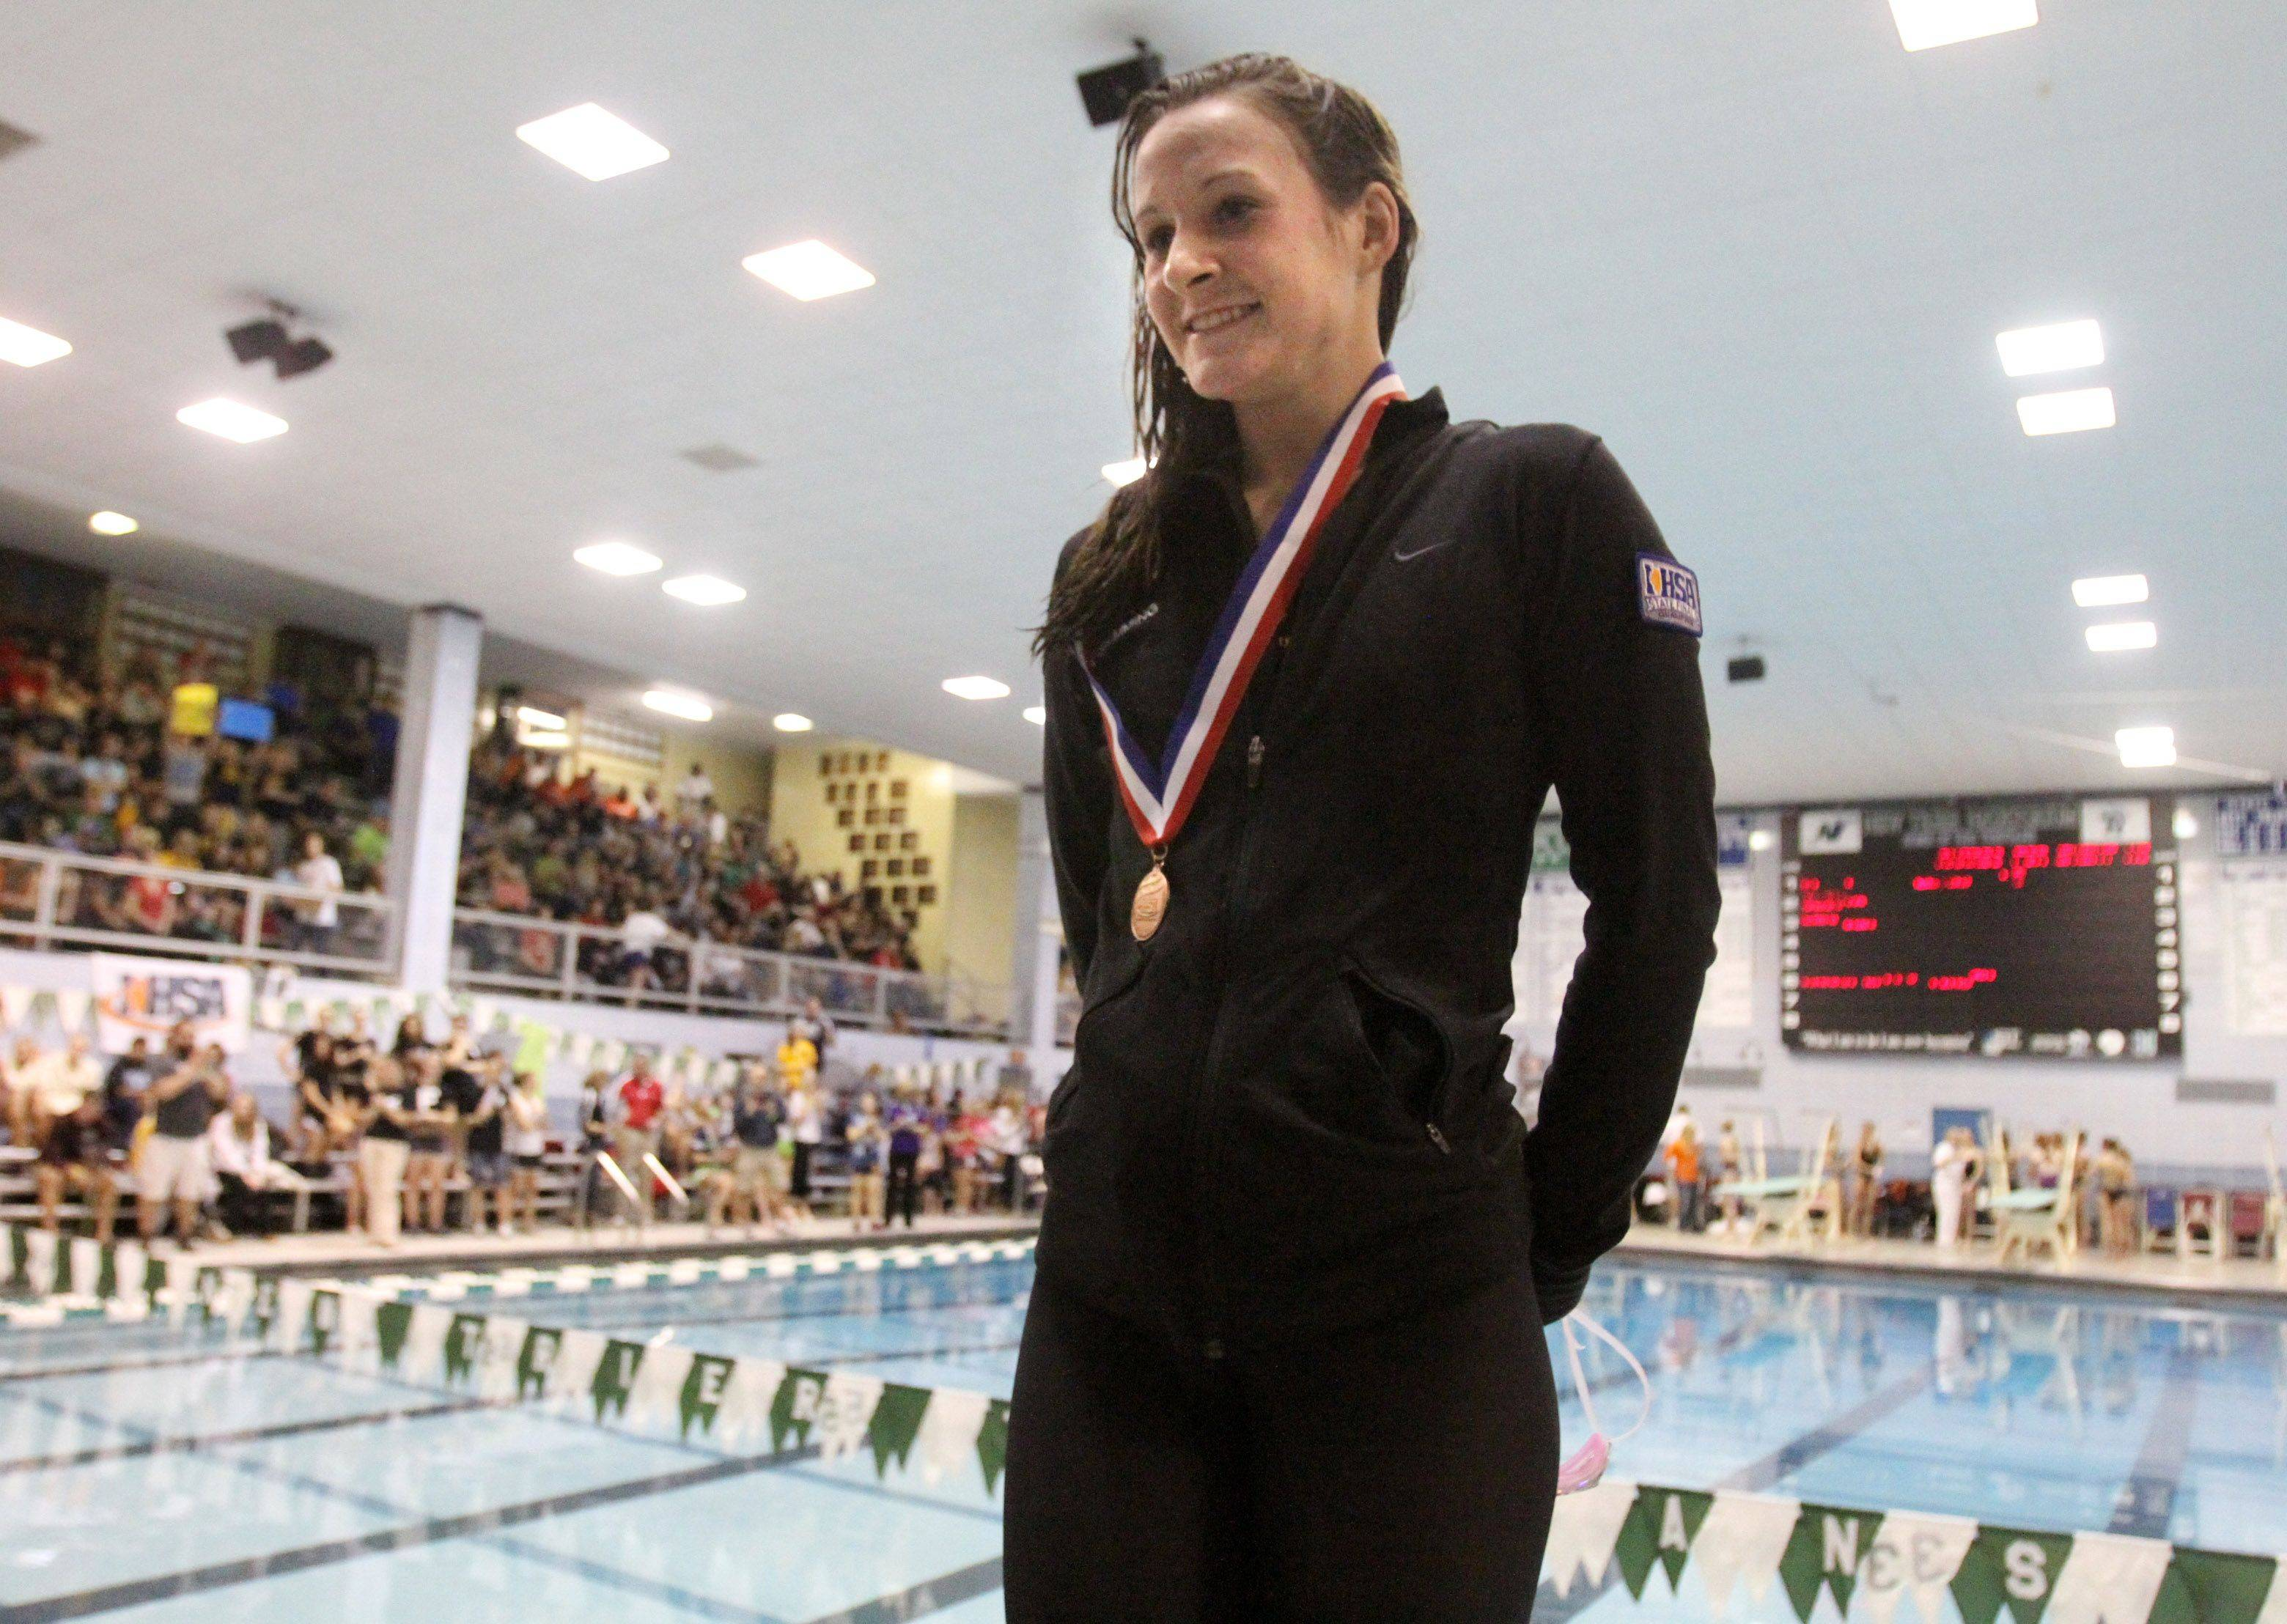 Crystal Lake Central-coop's Marisa Barton placed third in the 50-yard freestyle at IHSA state championships in Winnetka on Saturday, November 19th.